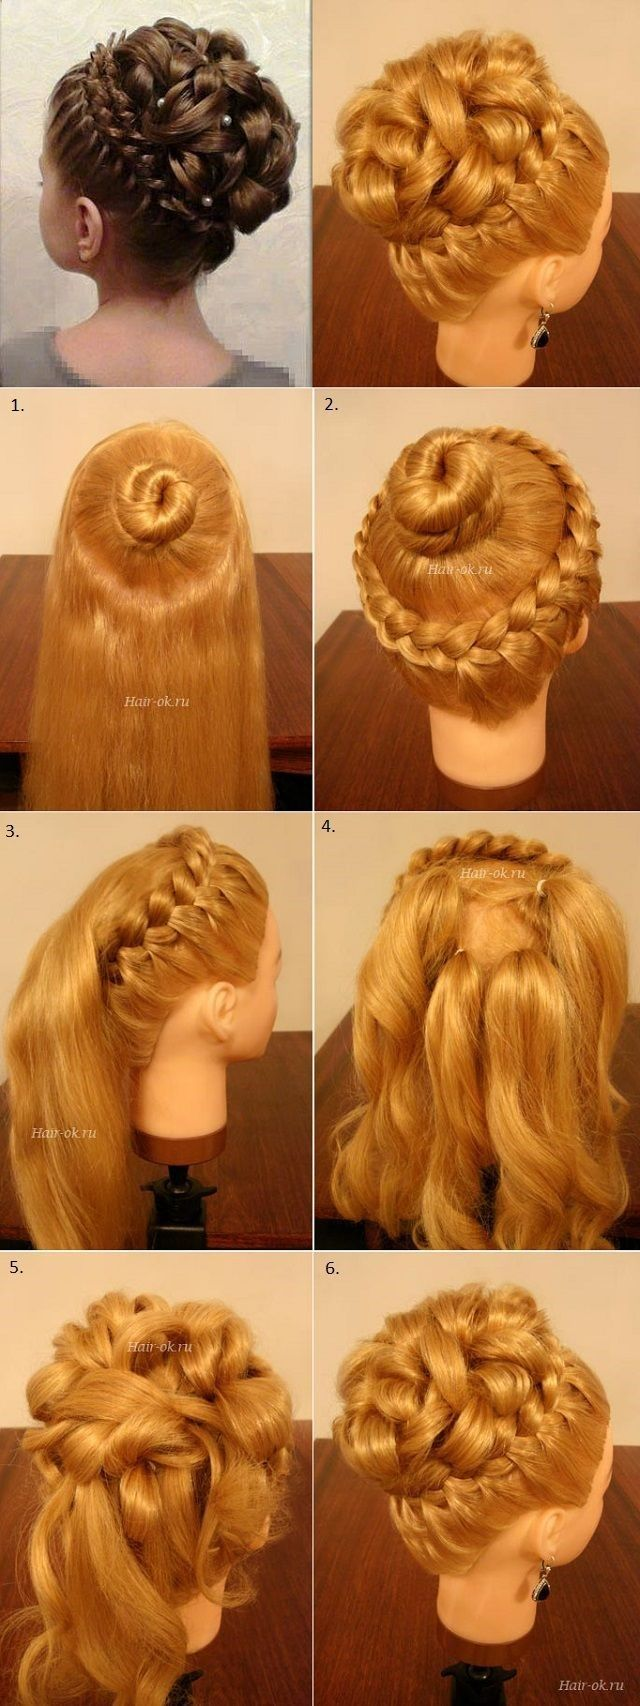 Pleasing 1000 Ideas About Simple Updo Hairstyles On Pinterest Simple Hairstyle Inspiration Daily Dogsangcom